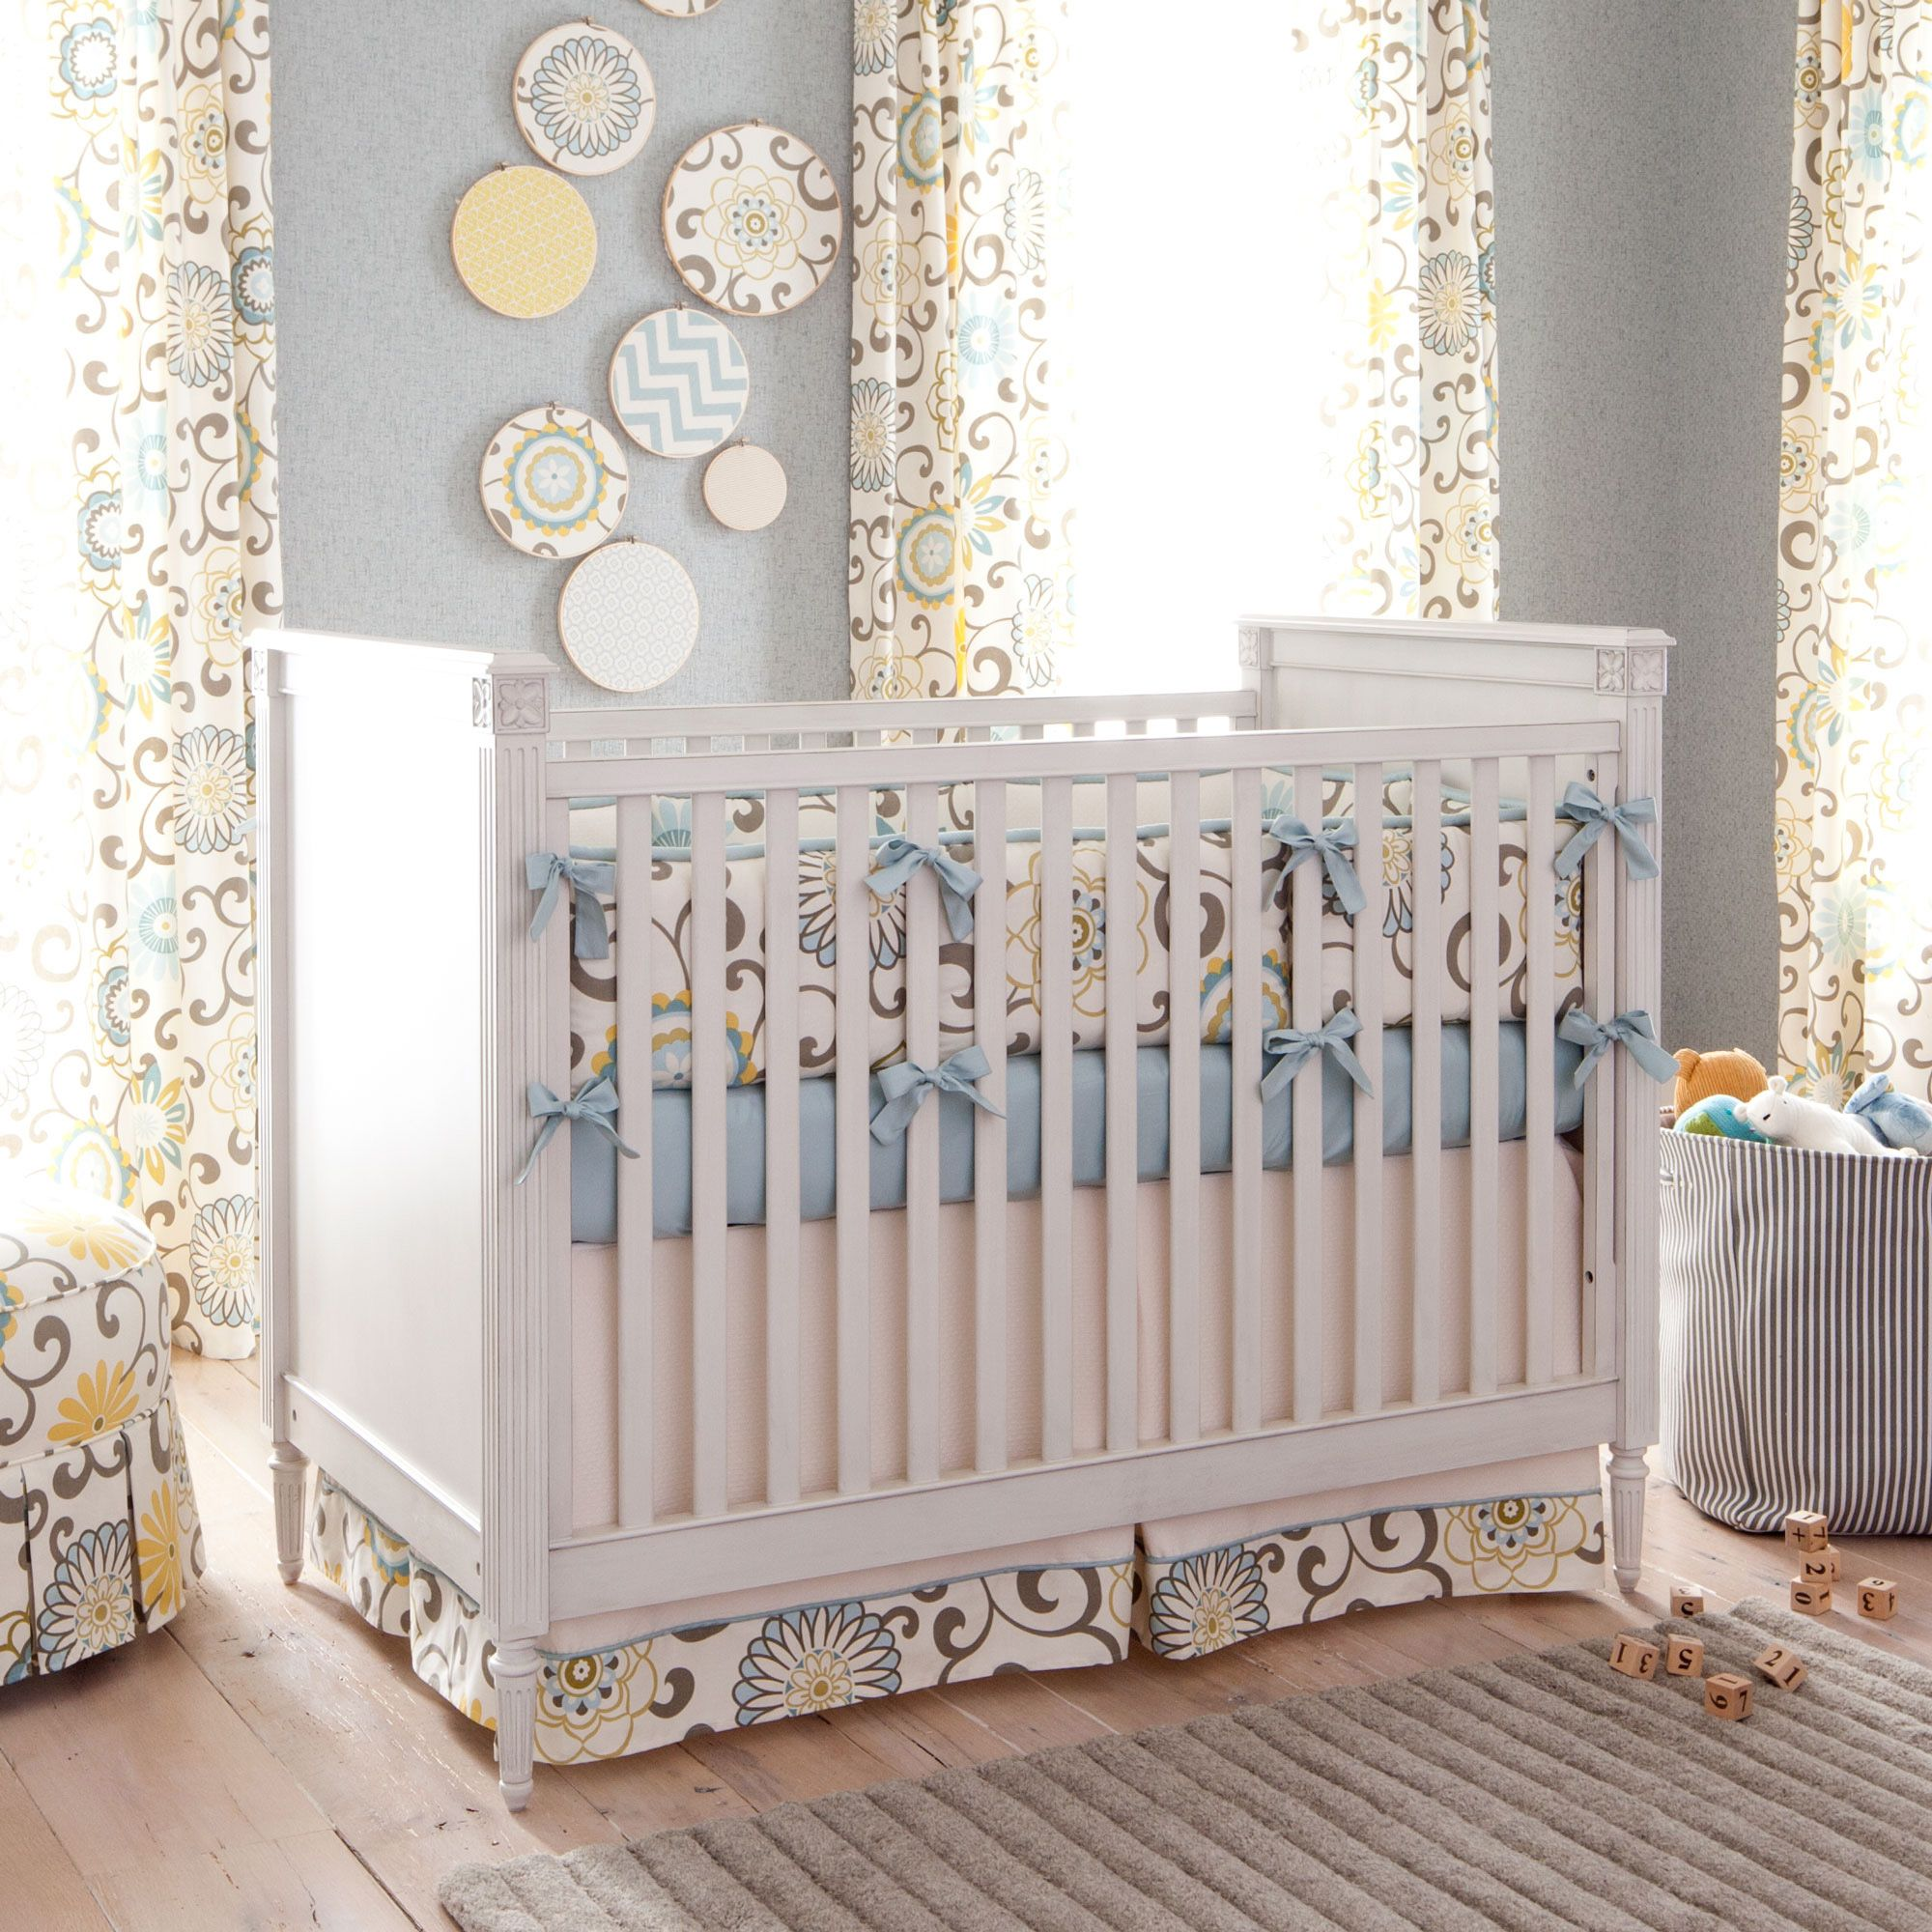 Spa Pom Pon Play Baby Crib Bedding